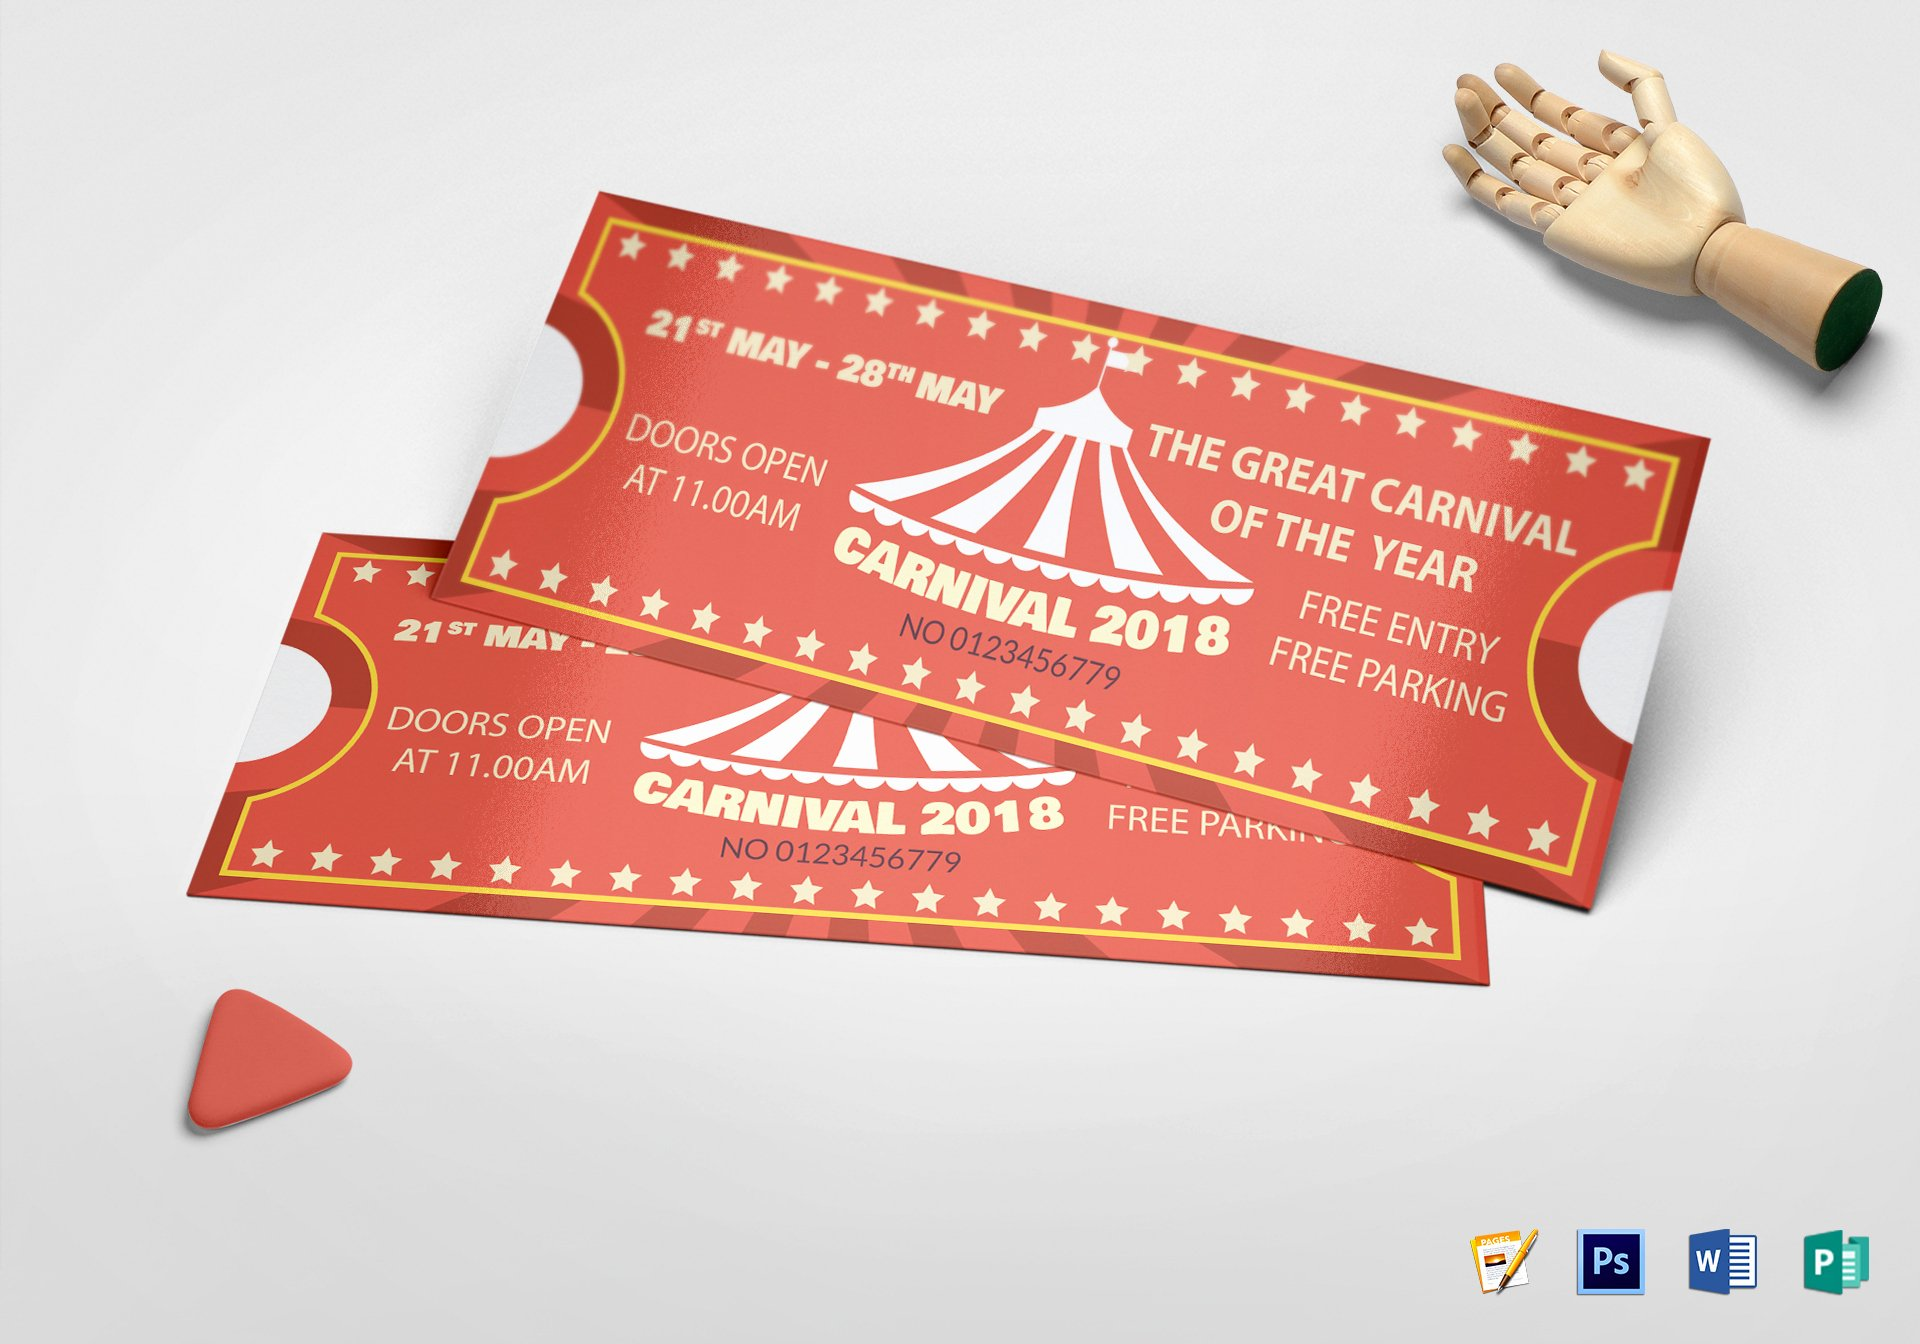 Ticket Design Template Free Best Of Printable Carnival Ticket Design Template In Psd Word